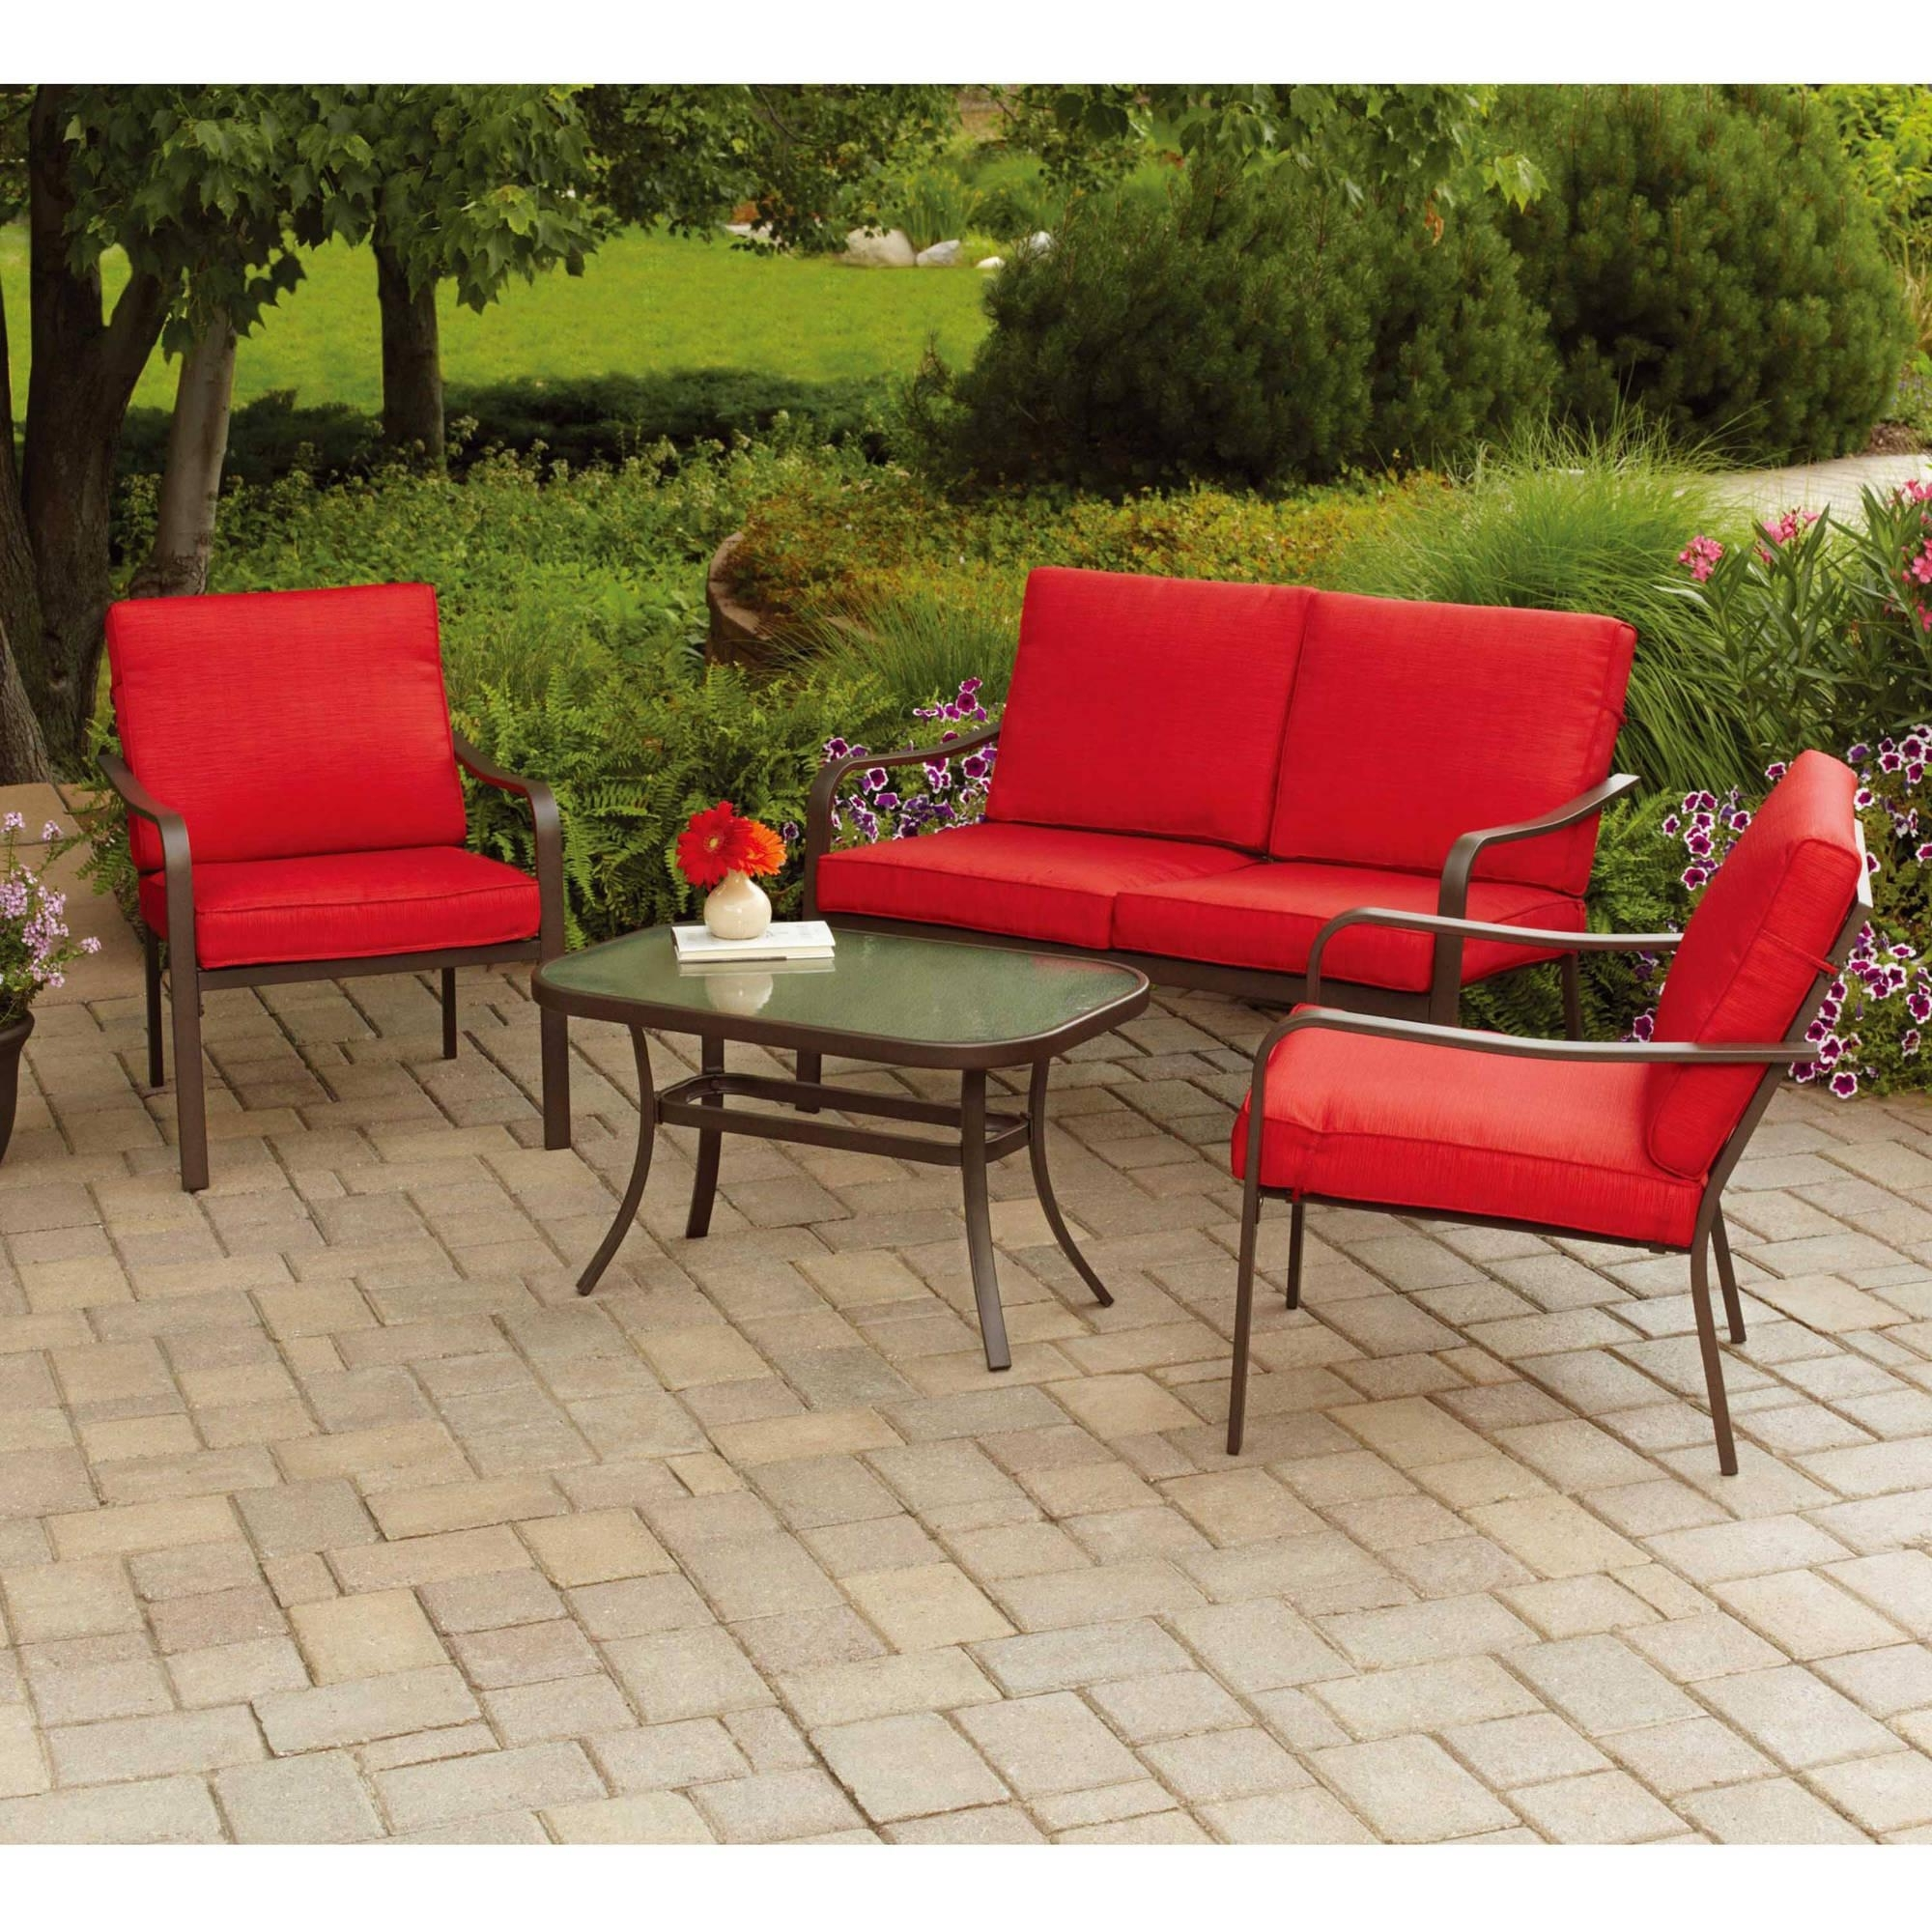 Patio: Cool Conversation Sets Patio Furniture Clearance With Modern Pertaining To Newest Patio Umbrellas At Lowes (View 20 of 20)